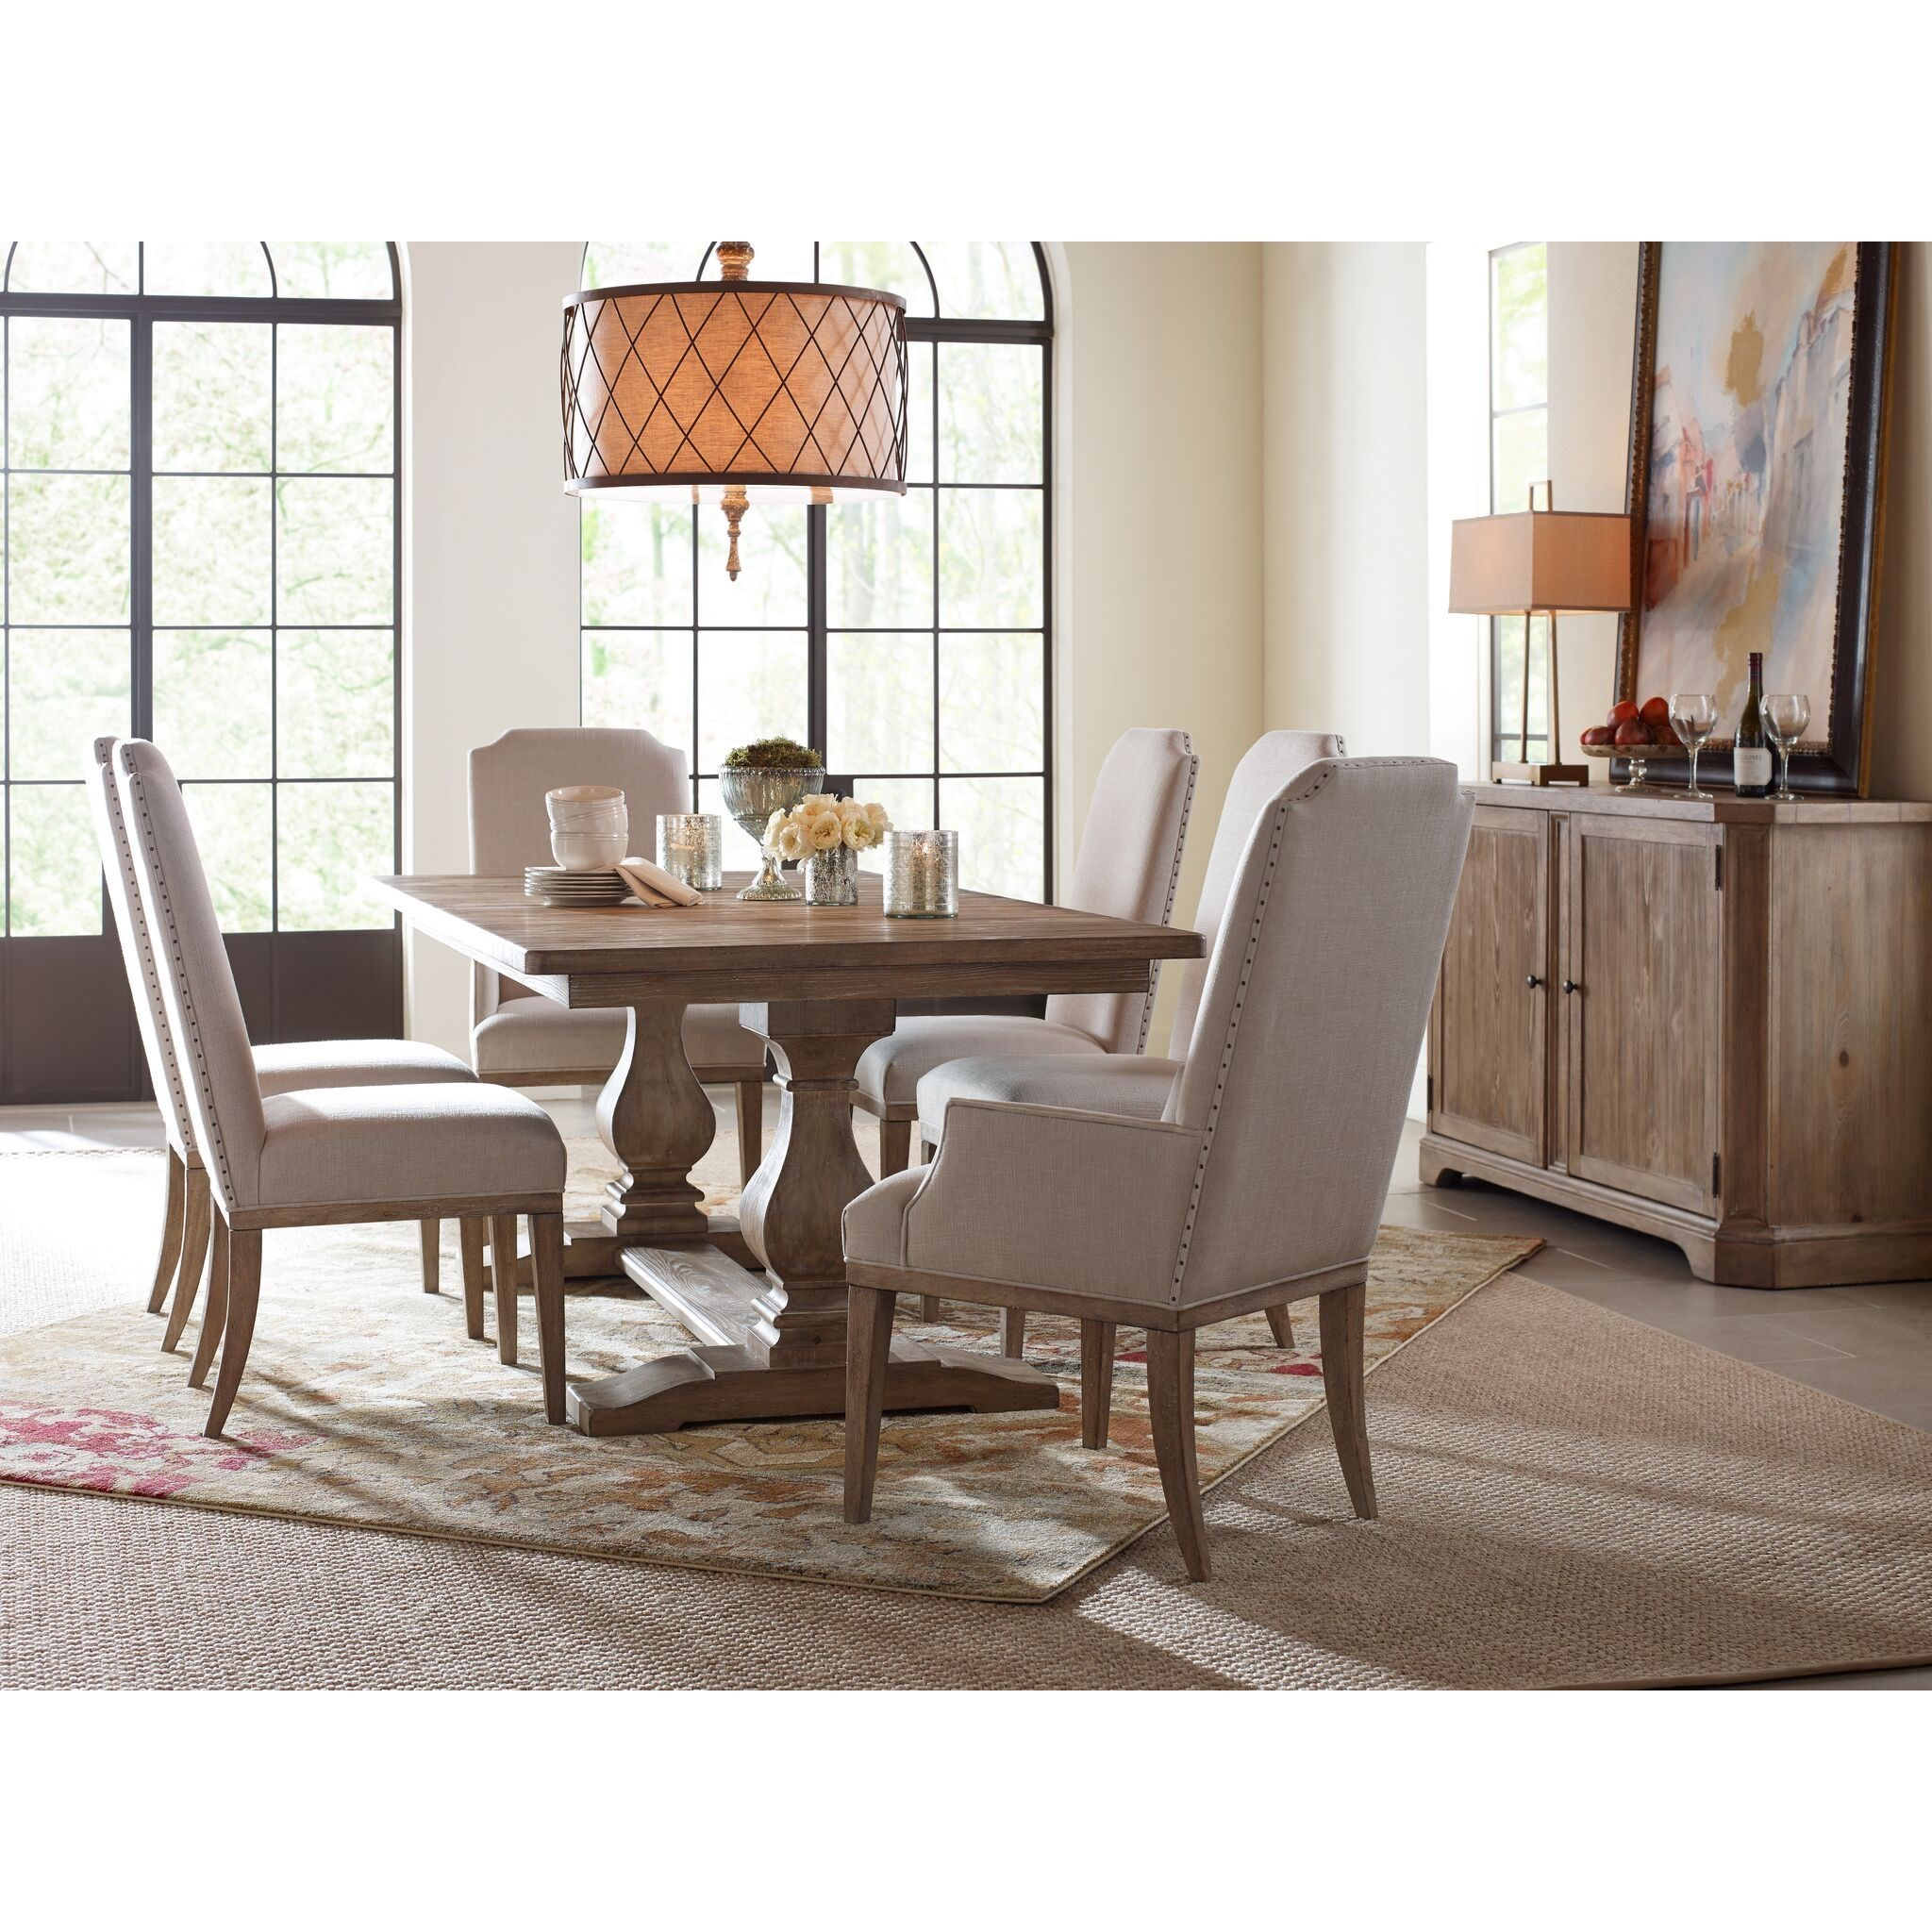 Rachael Ray Home By Legacy Classic Monteverdi Formal Dining Room Group